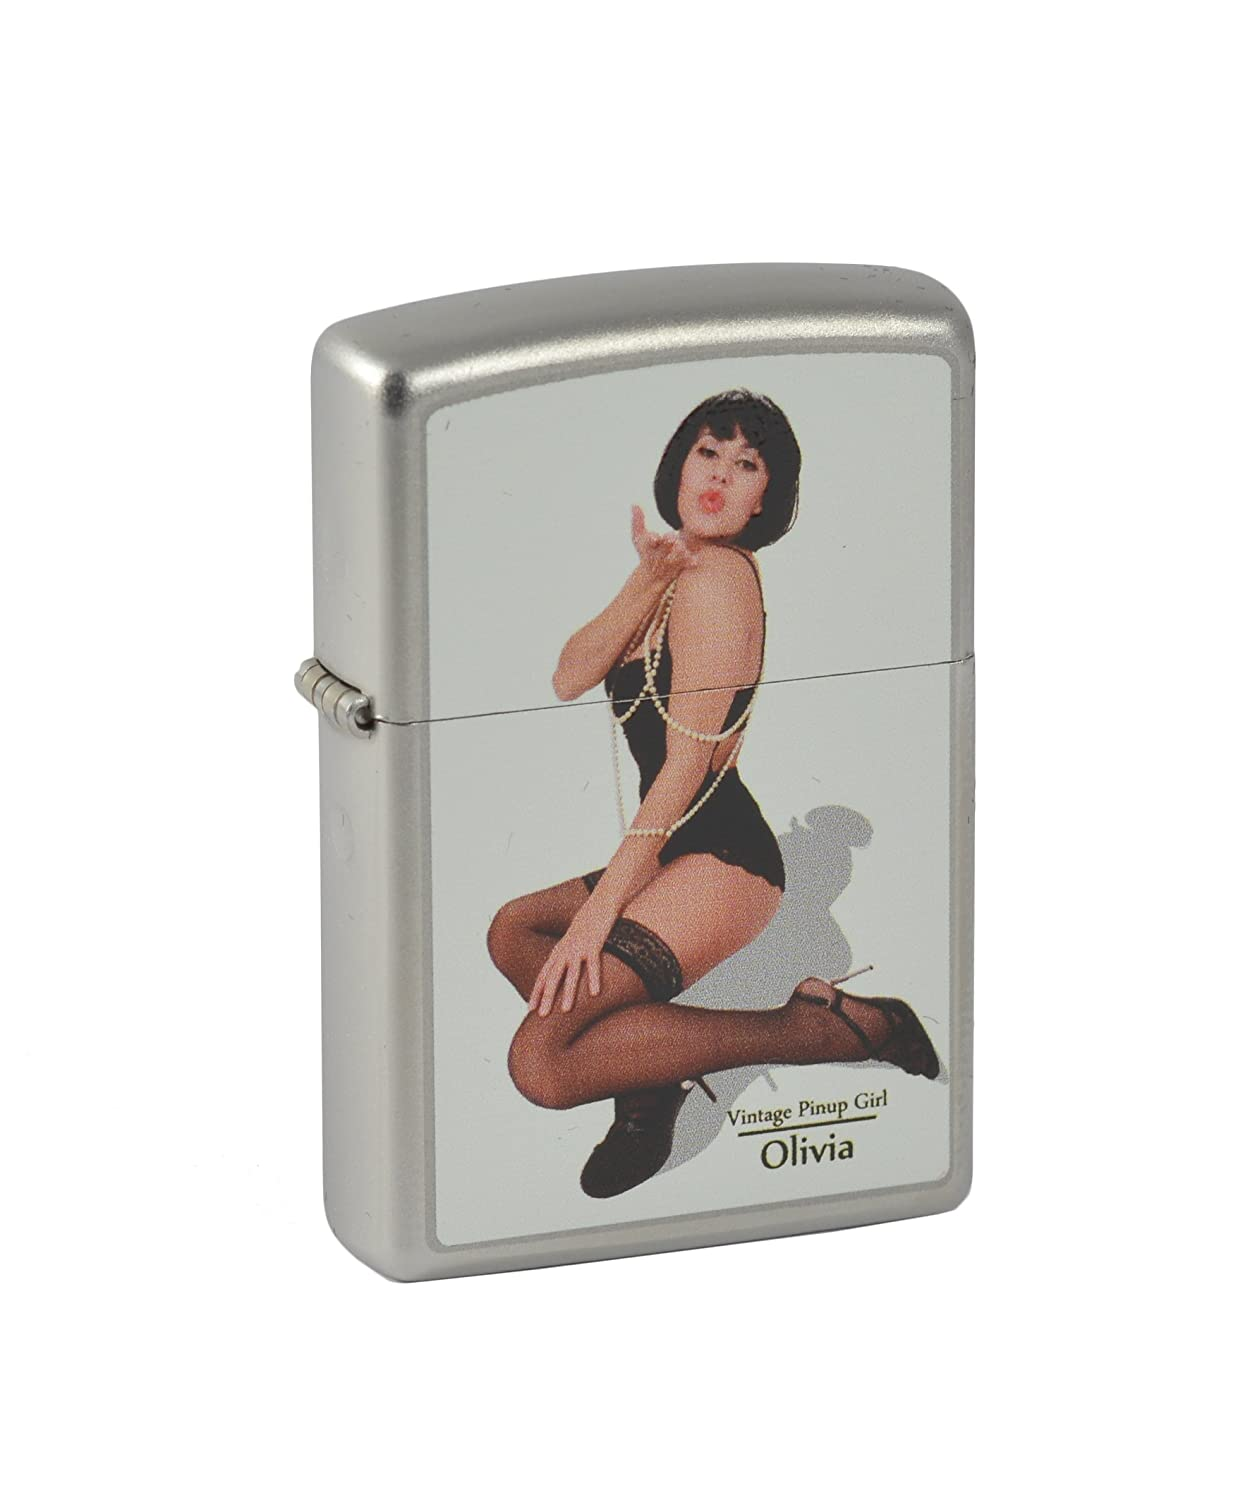 Zippo 2.003.229 Feuerzeuge Vintage Pin Up Girl Olivia - Limited Edition 001 500-500 500 - MM - Collection 2012 - satin Finish